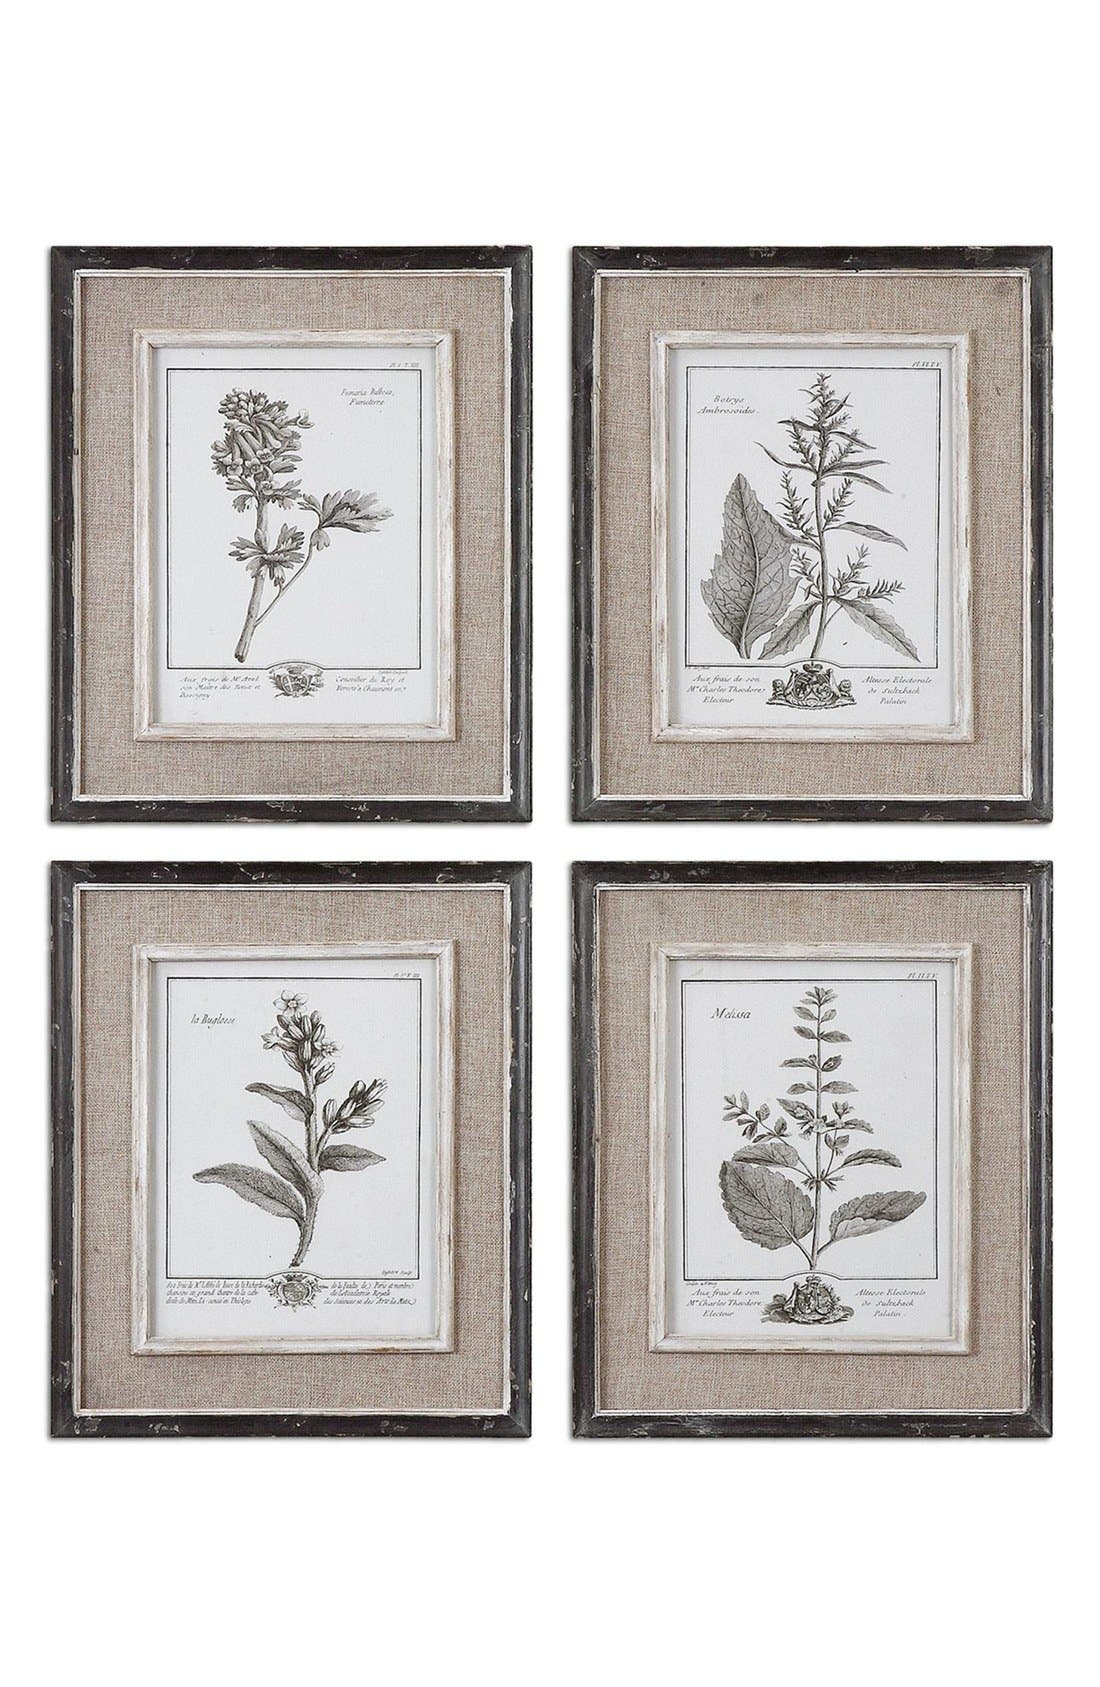 UTTERMOST 'Casual Grey Study' Wall Art